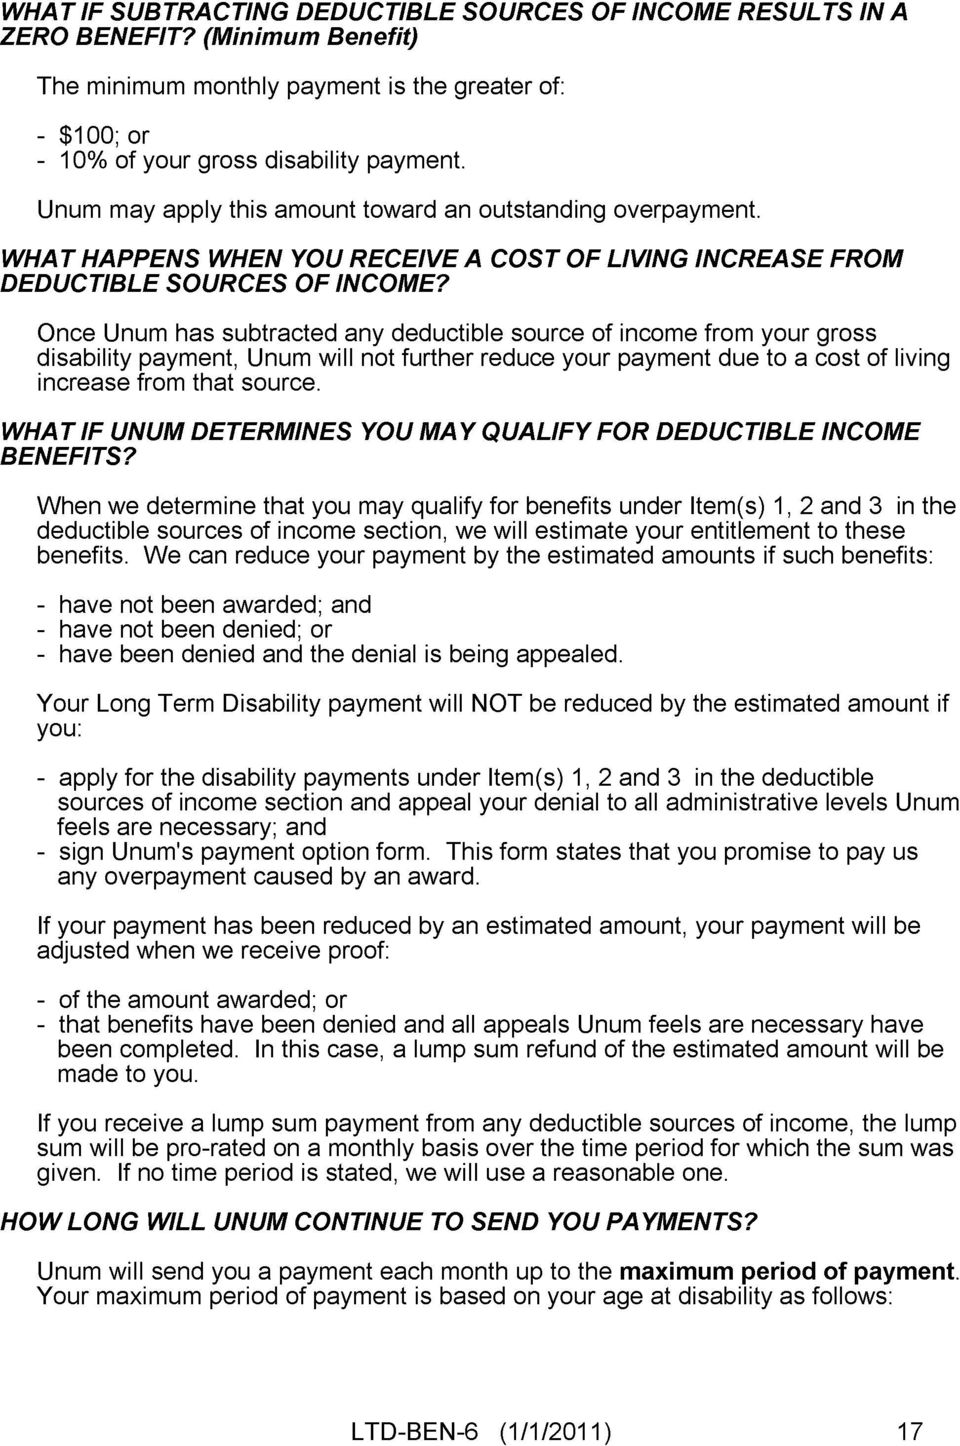 Once Unum has subtracted any deductible source of income from your gross disability payment, Unum will not further reduce your payment due to a cost of living increase from that source.